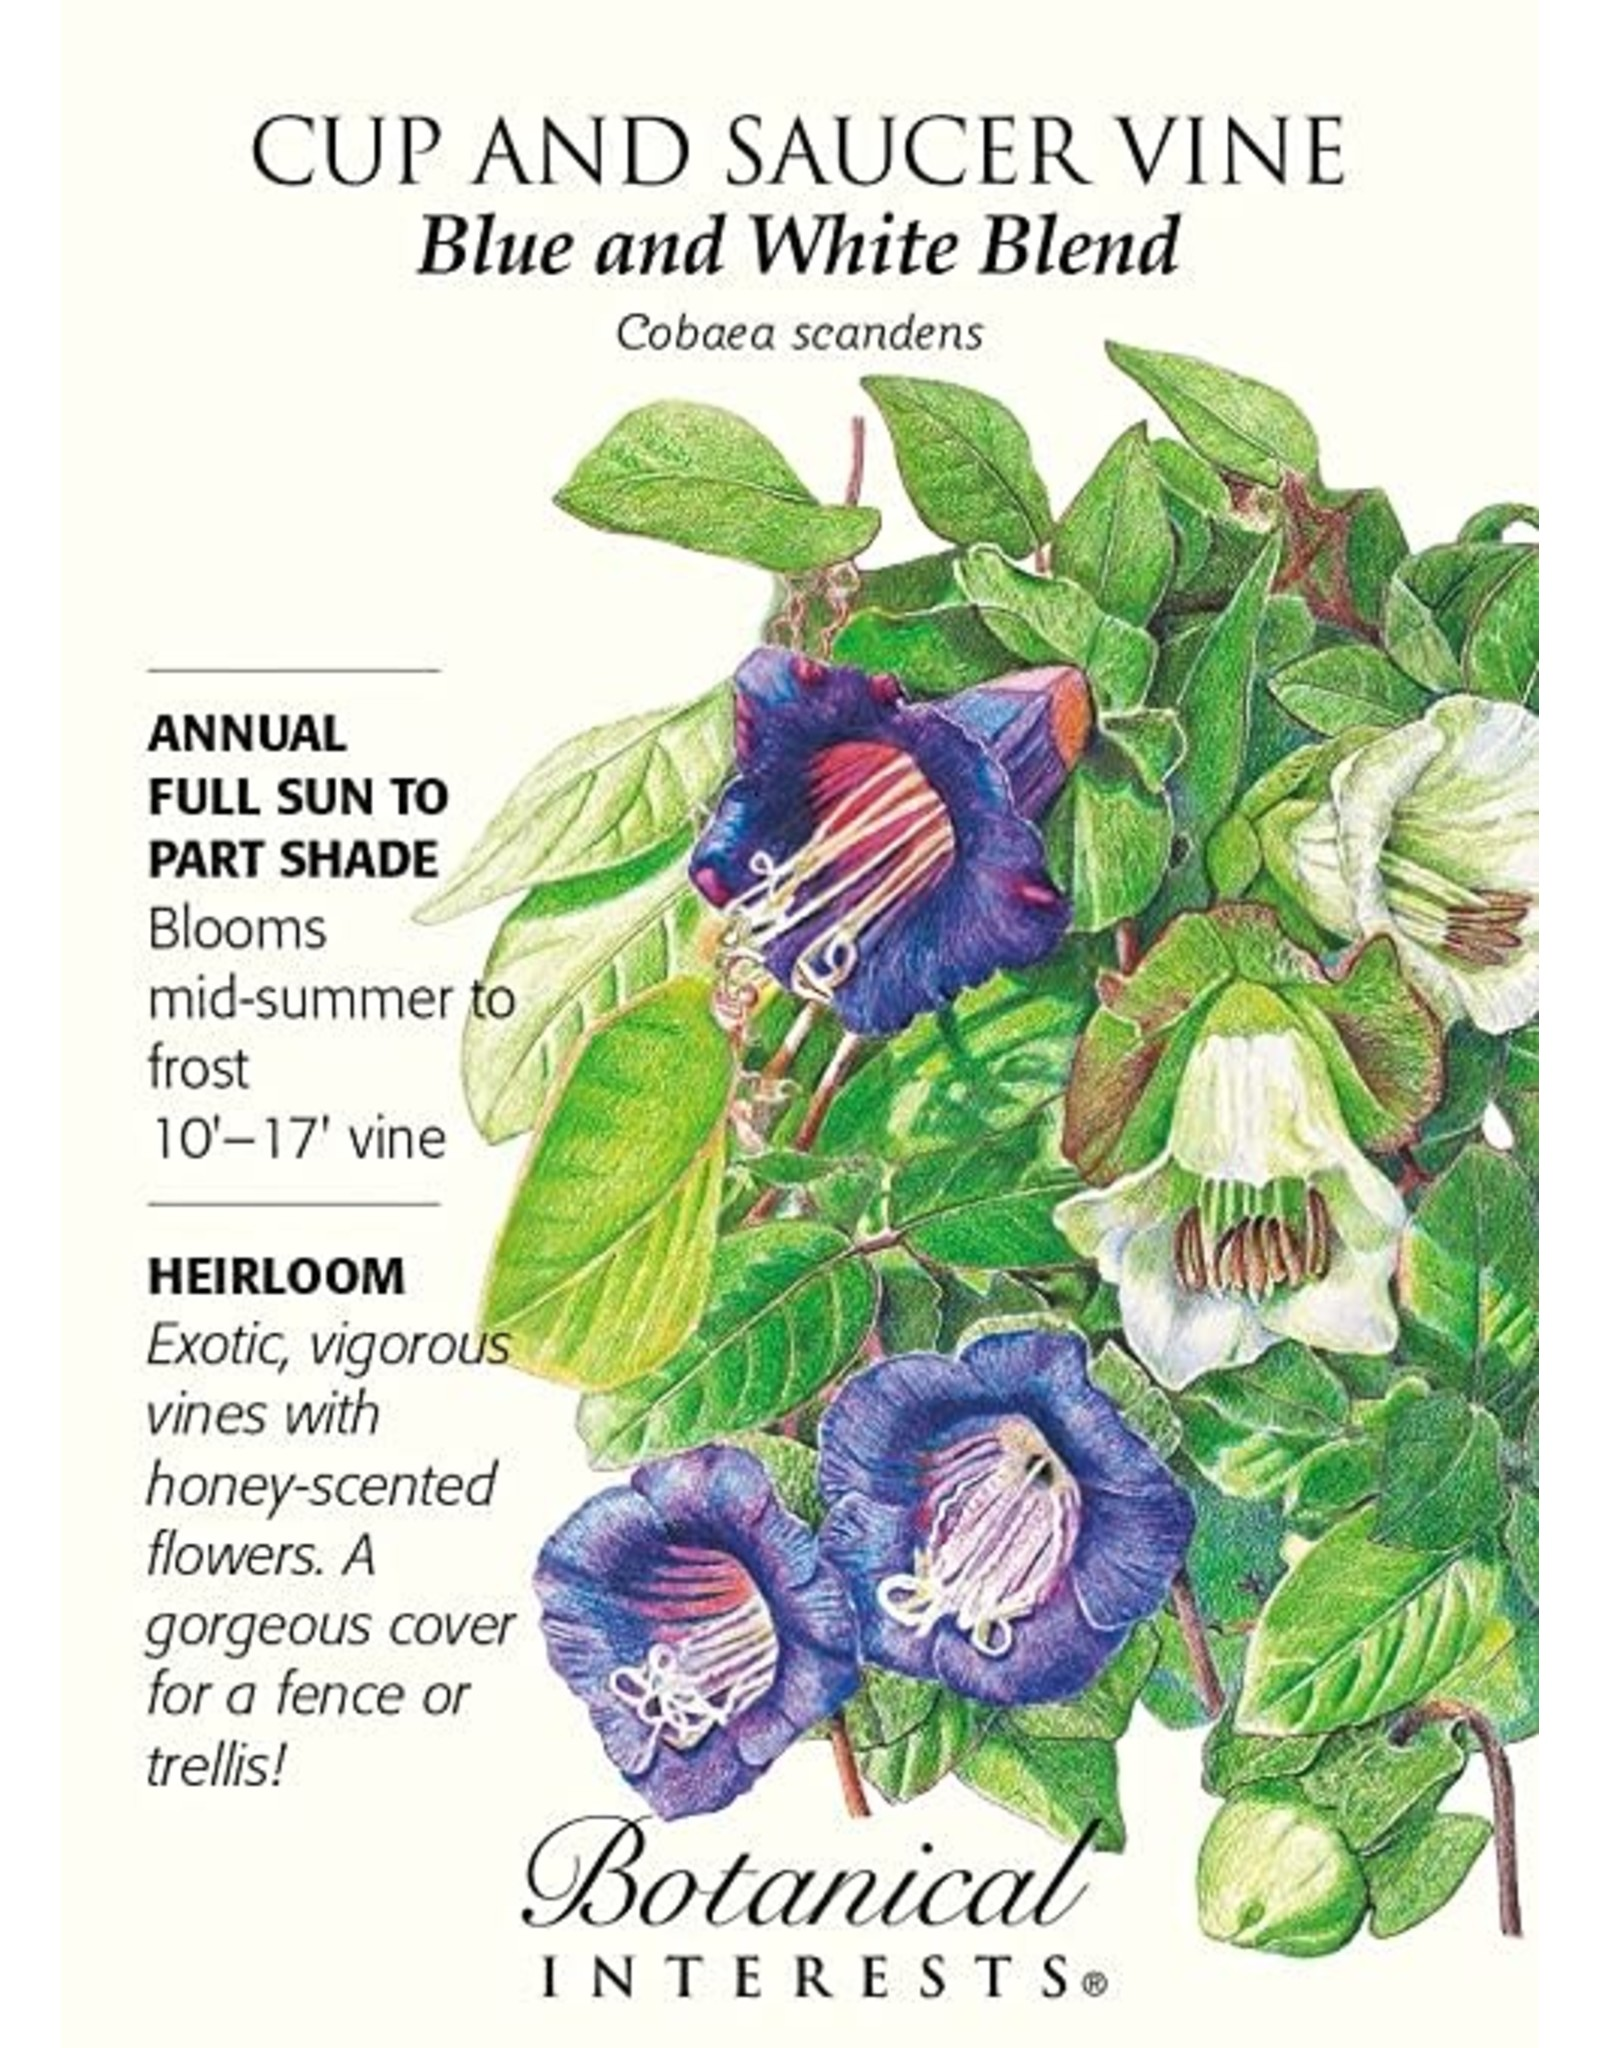 Seeds - Cup and Saucer Vine, Blue and White Blend